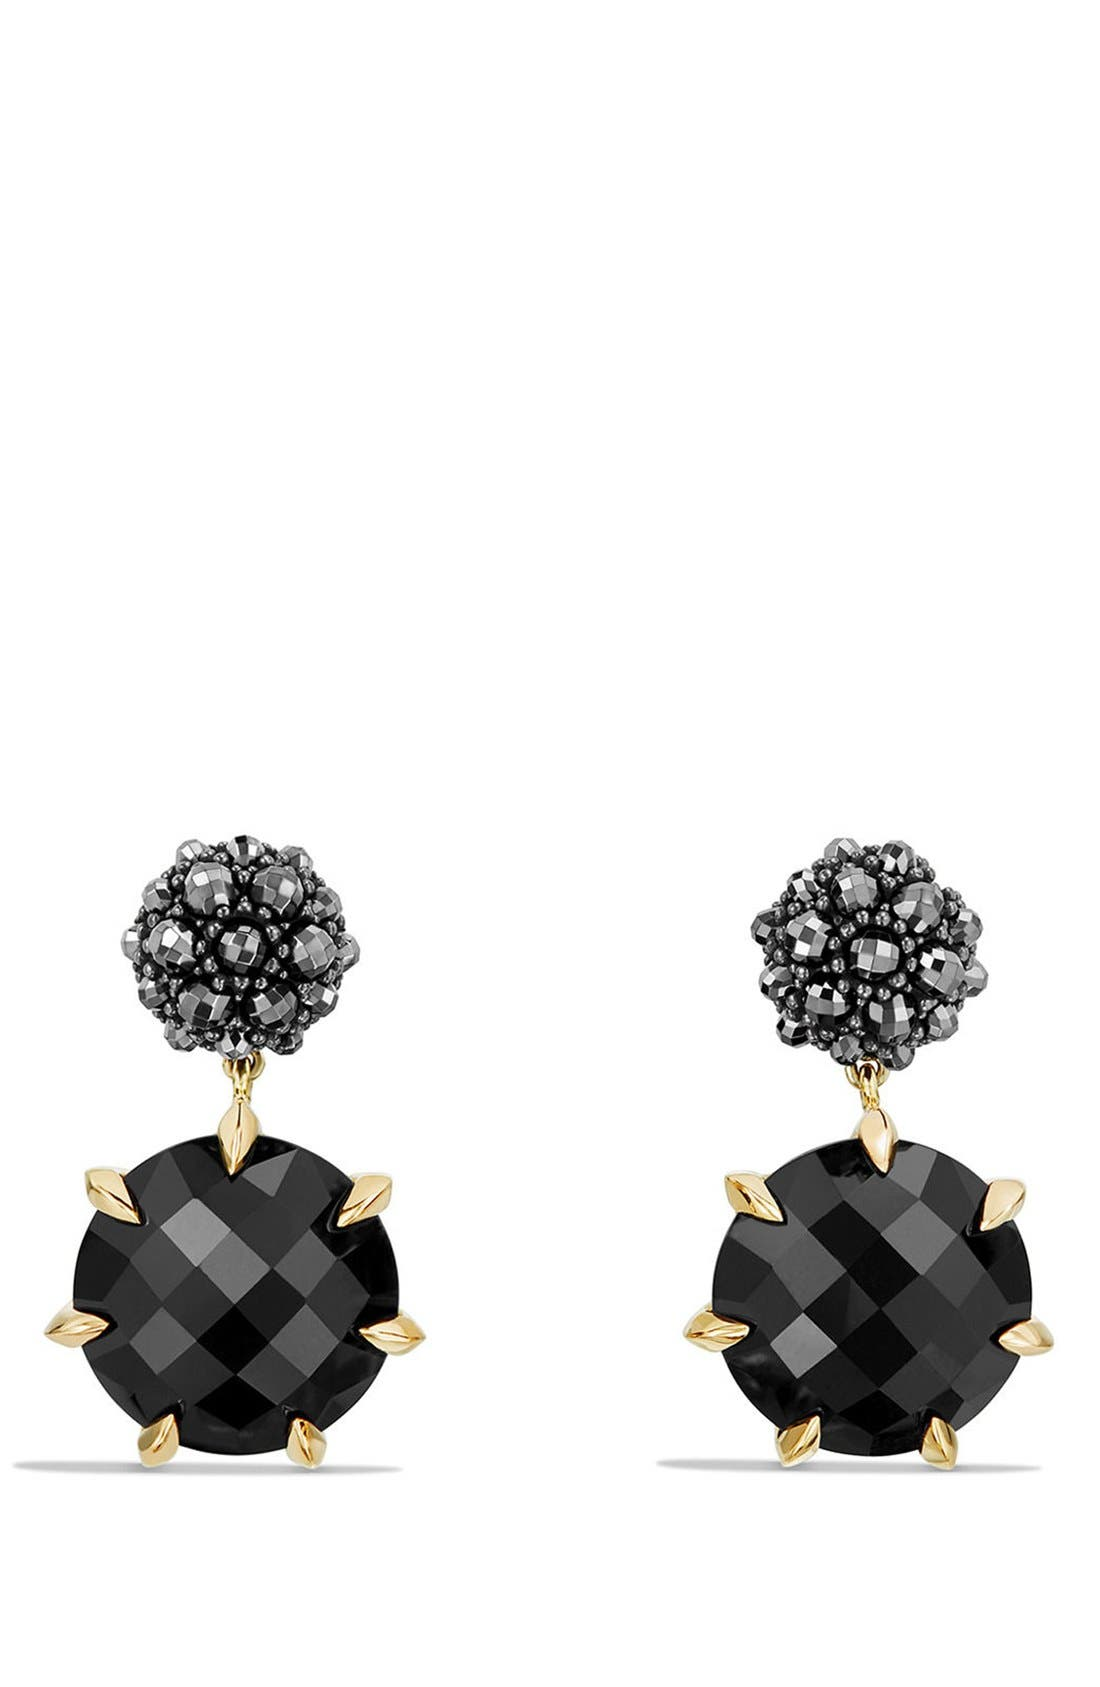 Alternate Image 1 Selected - David Yurman Osetra Drop Earrings with 18K Gold